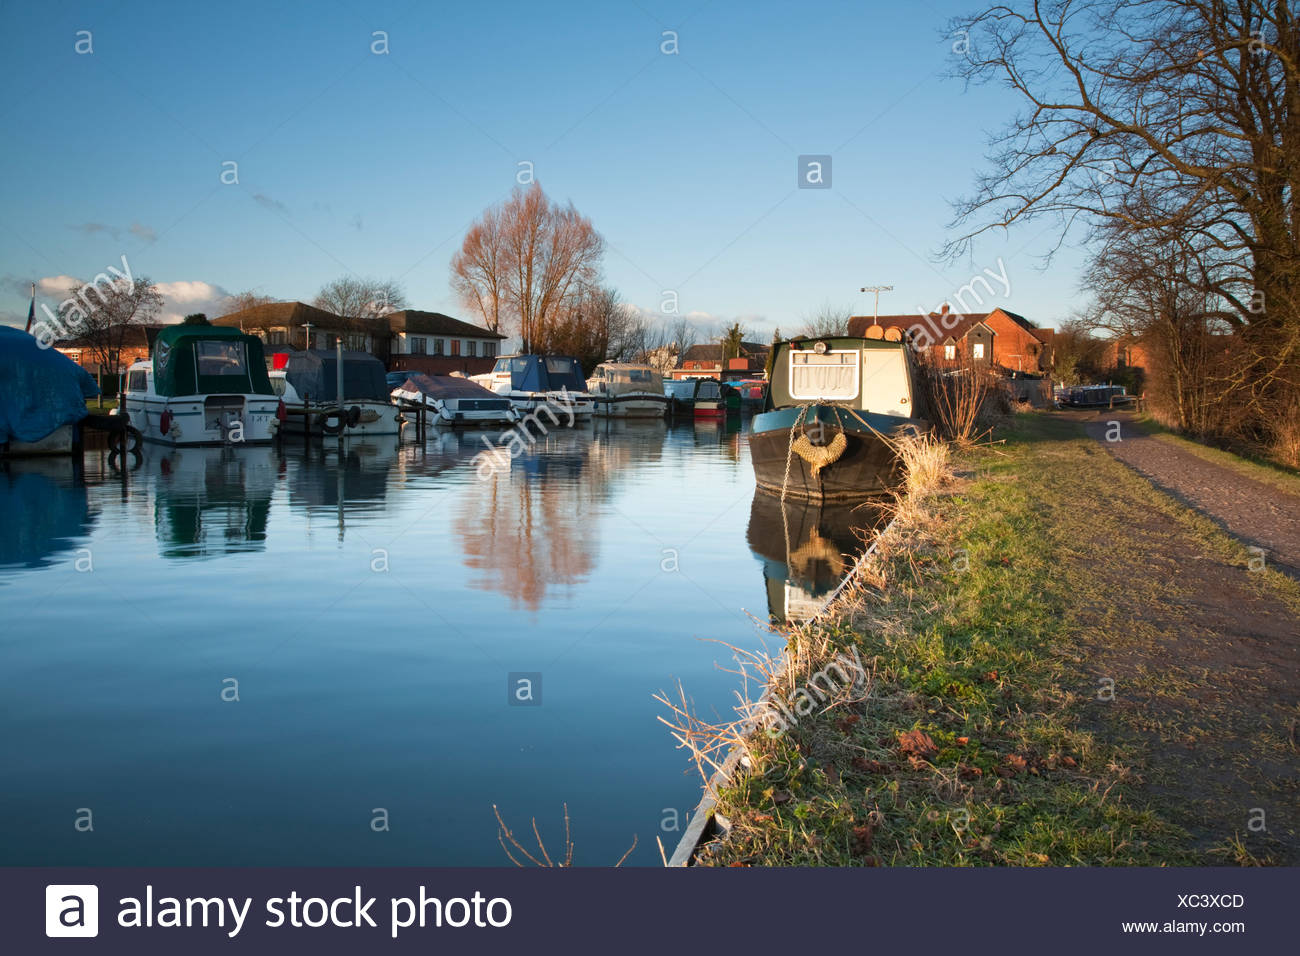 River Kennet and Kennet and Avon Canal in Newbury, Berkshire, Uk - Stock Image